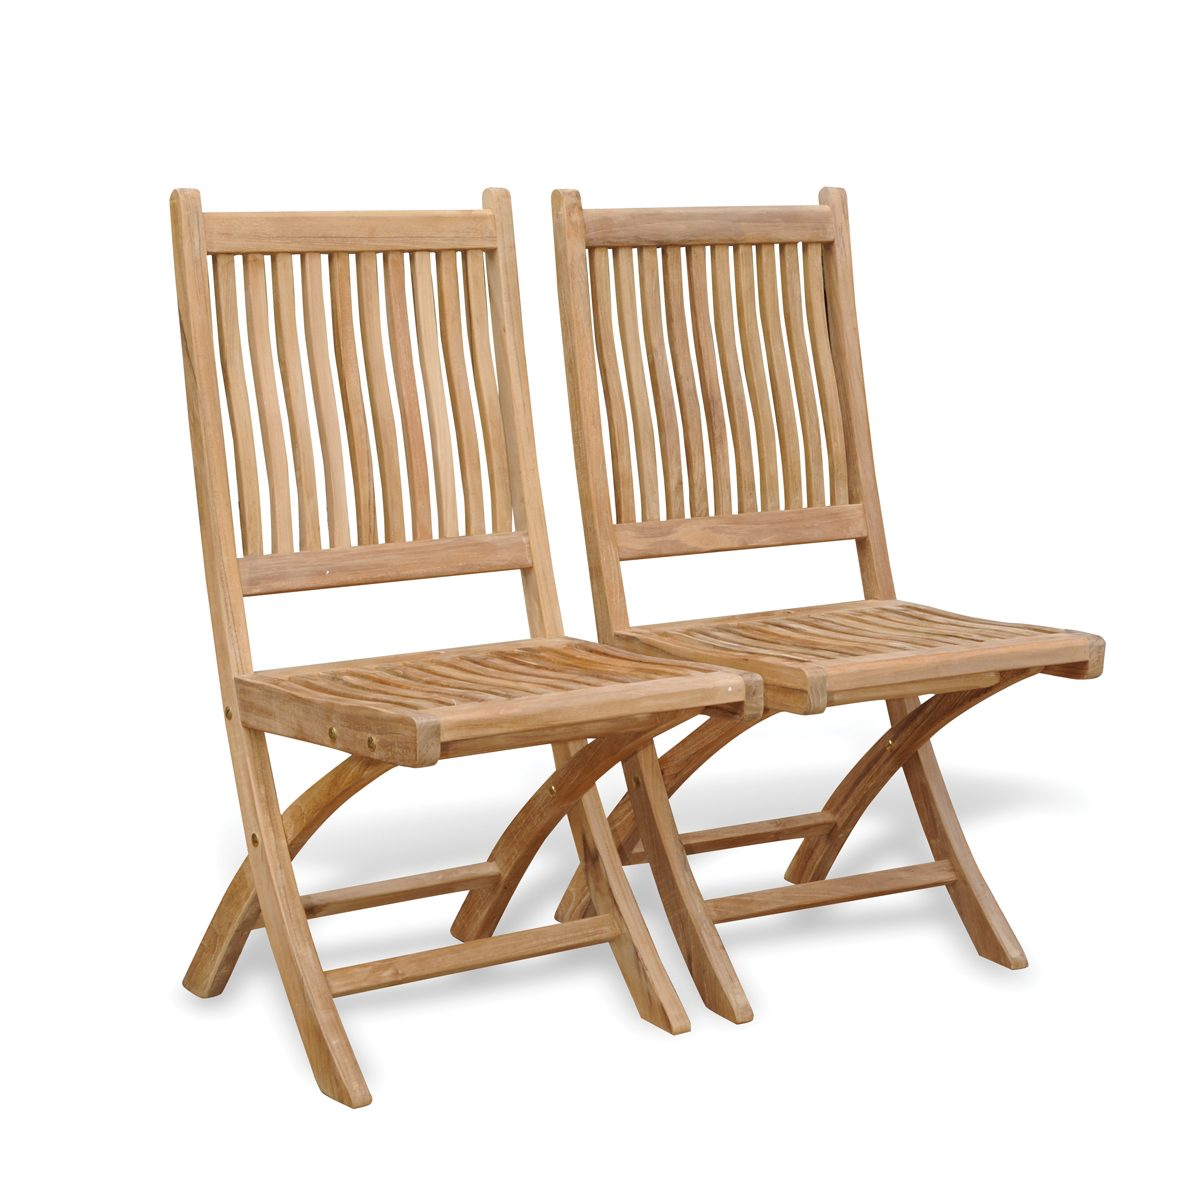 teak chair furniture teak folding chairs with cushion pair the rockport collectionteak chair furniture